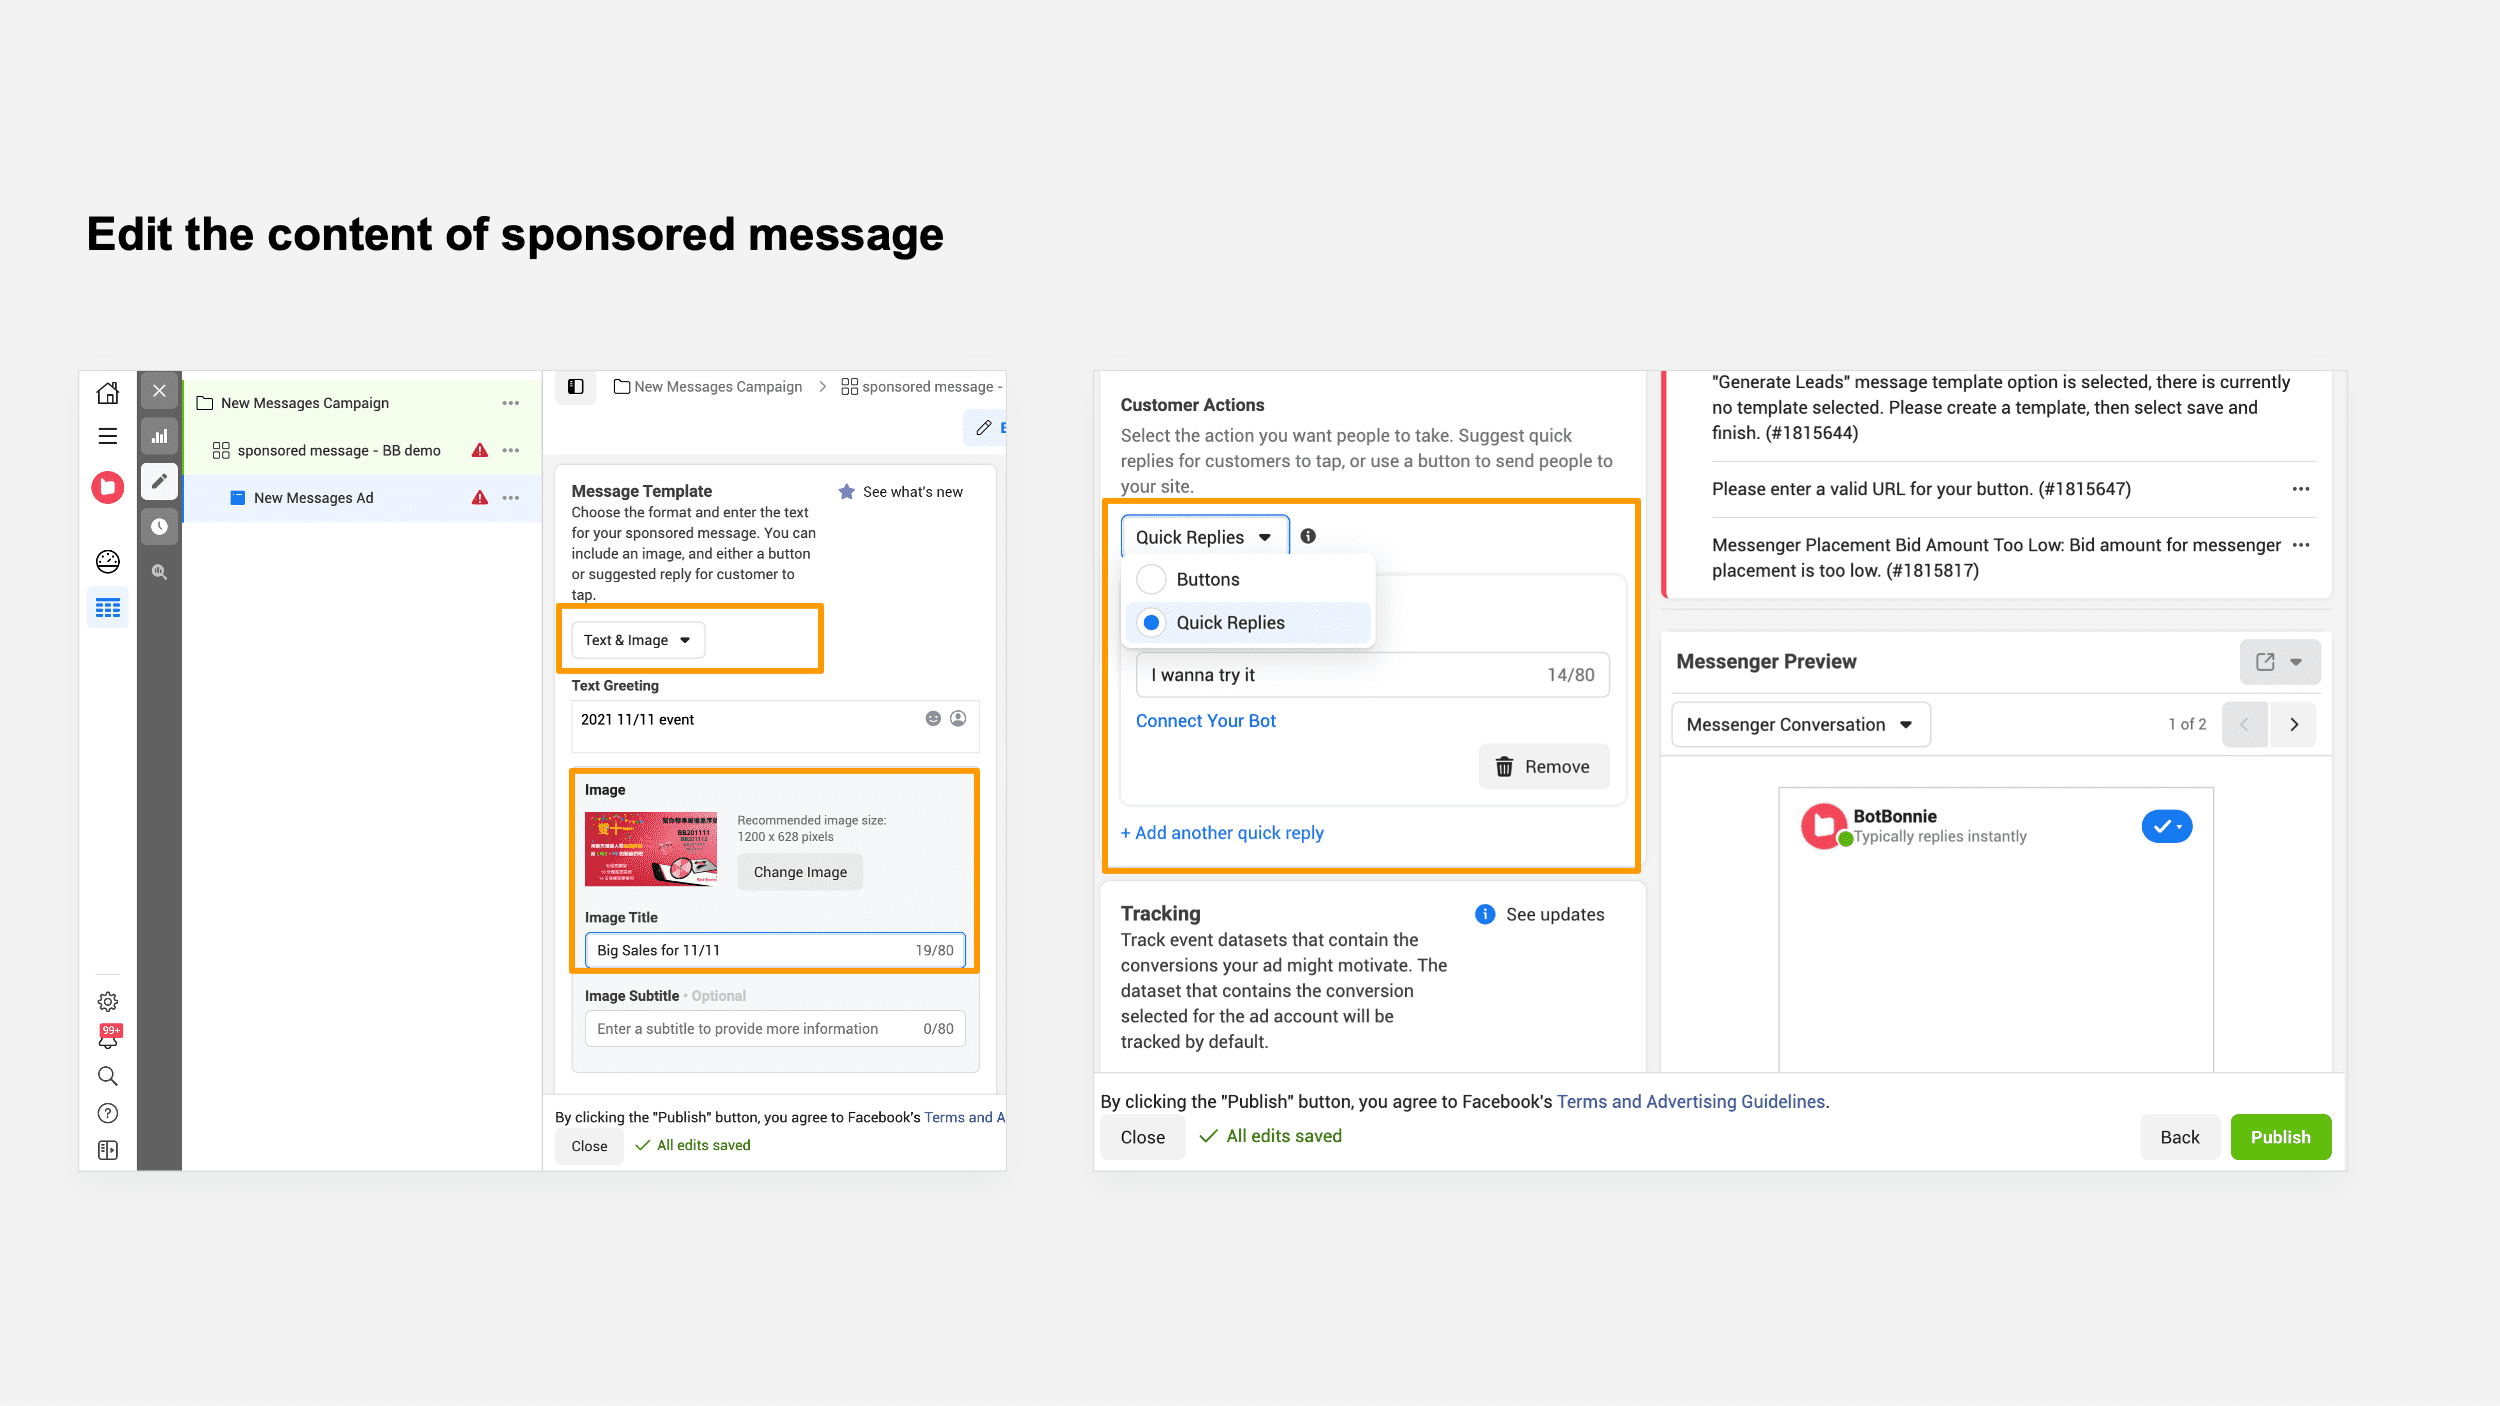 """Under """"Customer Actions,"""" you can choose """"Buttons"""" or """"Quick Replies"""""""